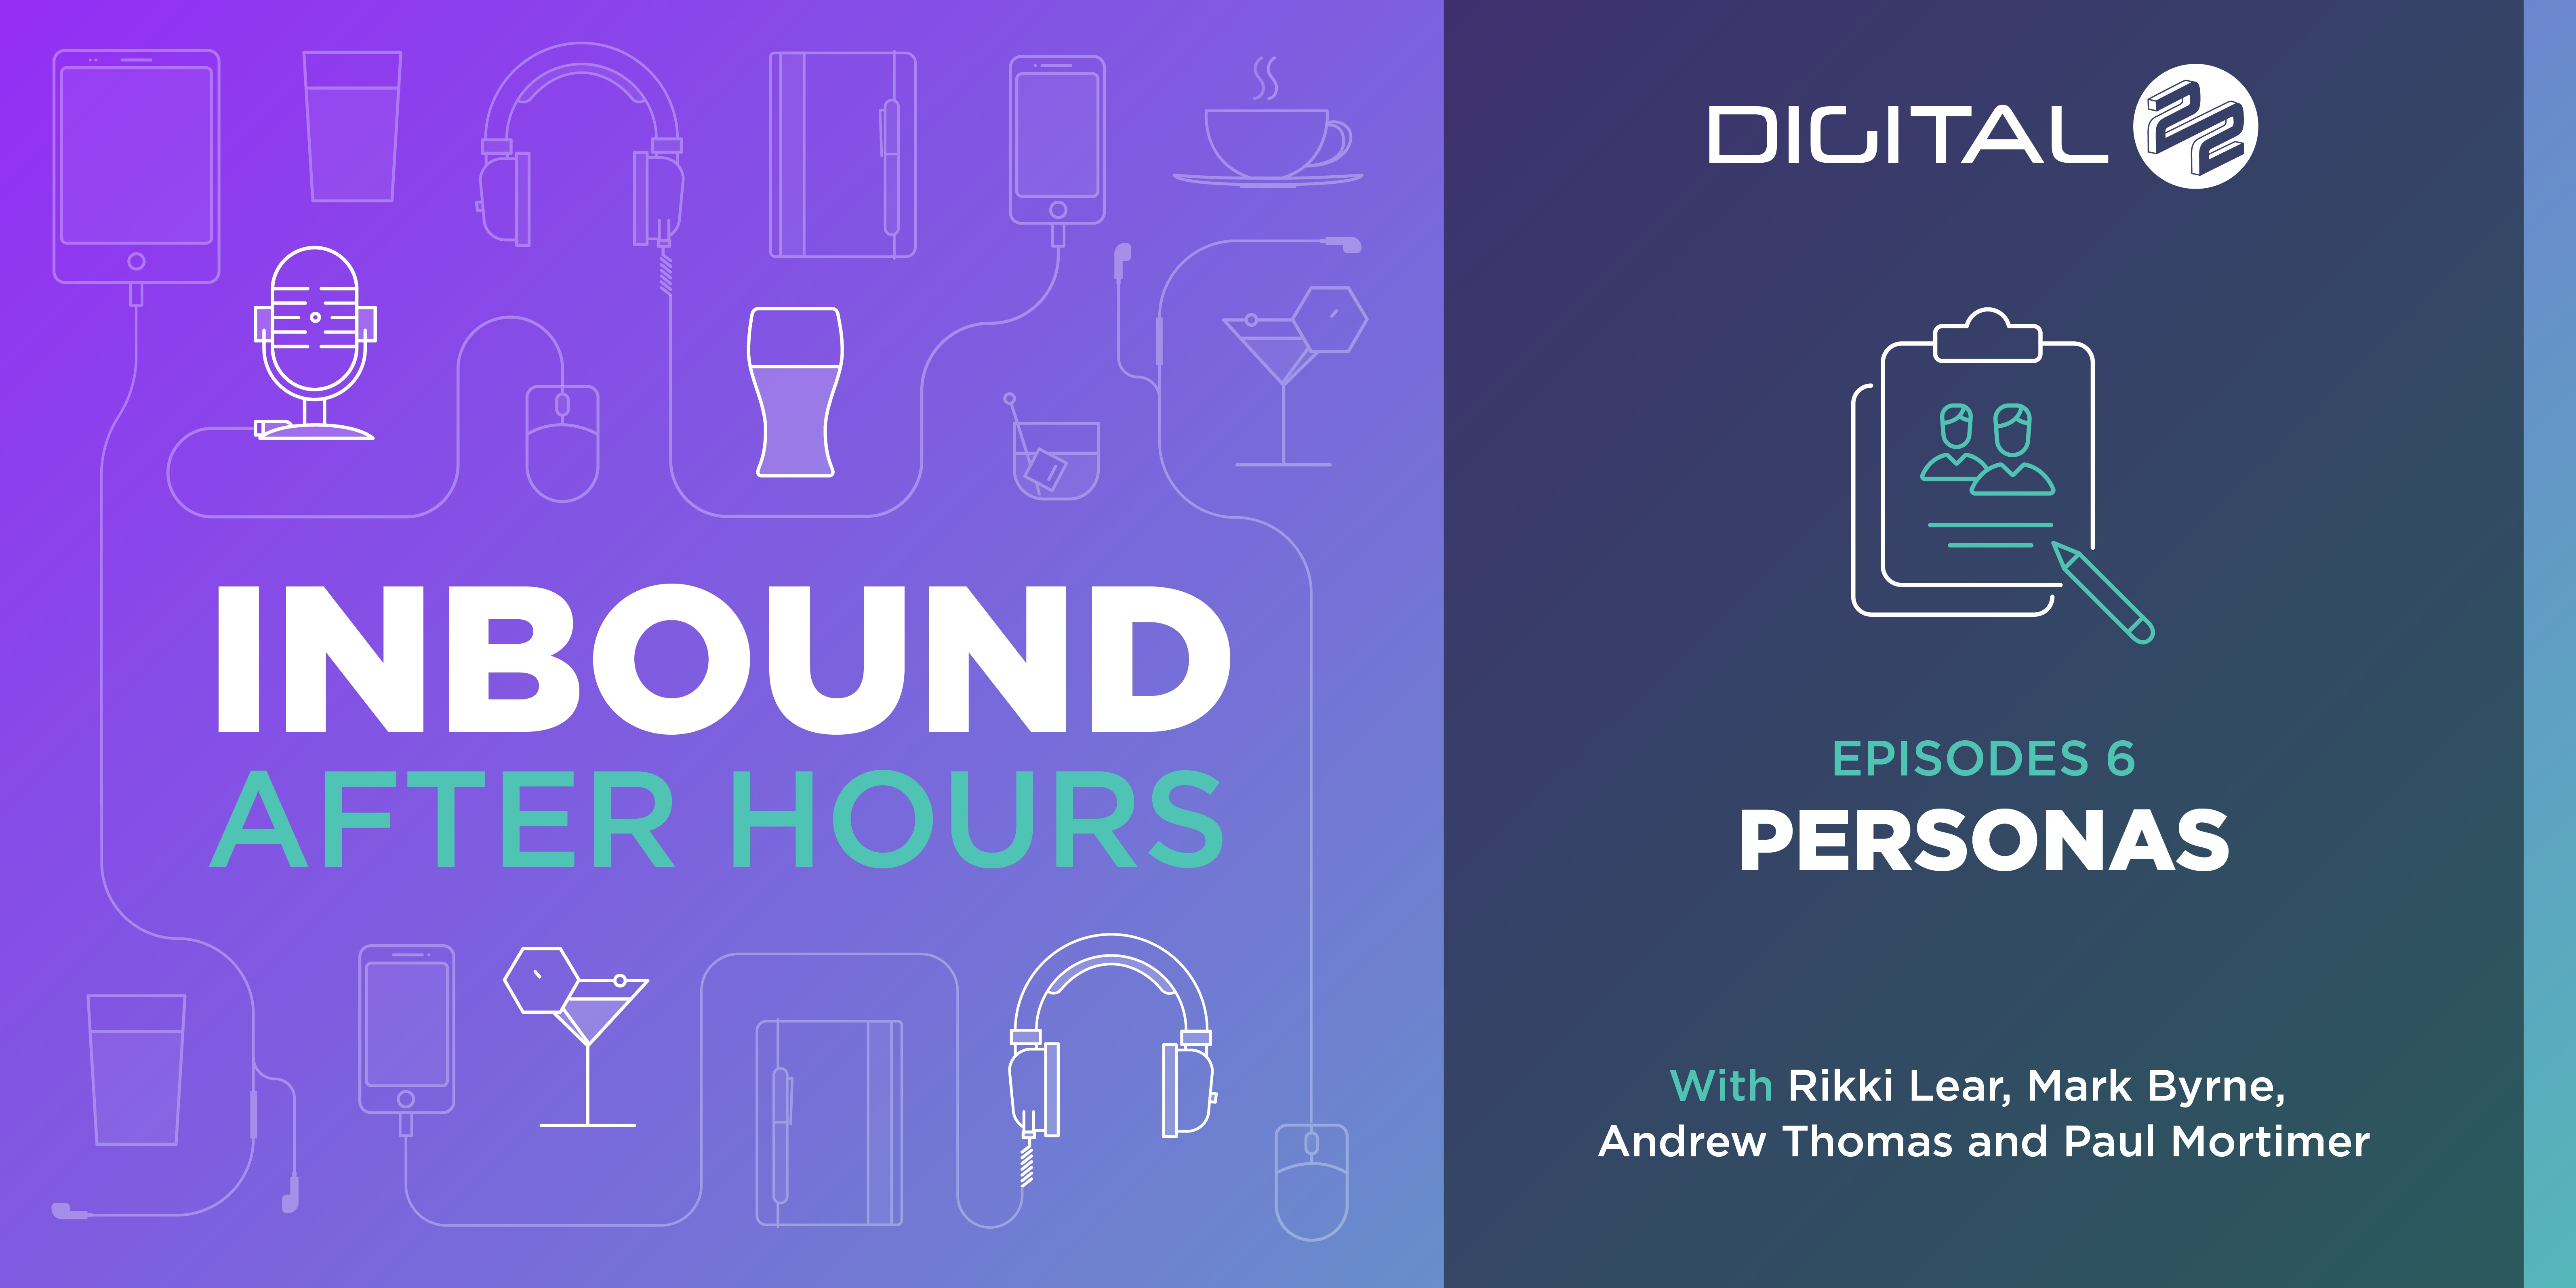 Digital 22_Inbound After Hours Banner - Episodes 6_BP_v1.0-06.jpg